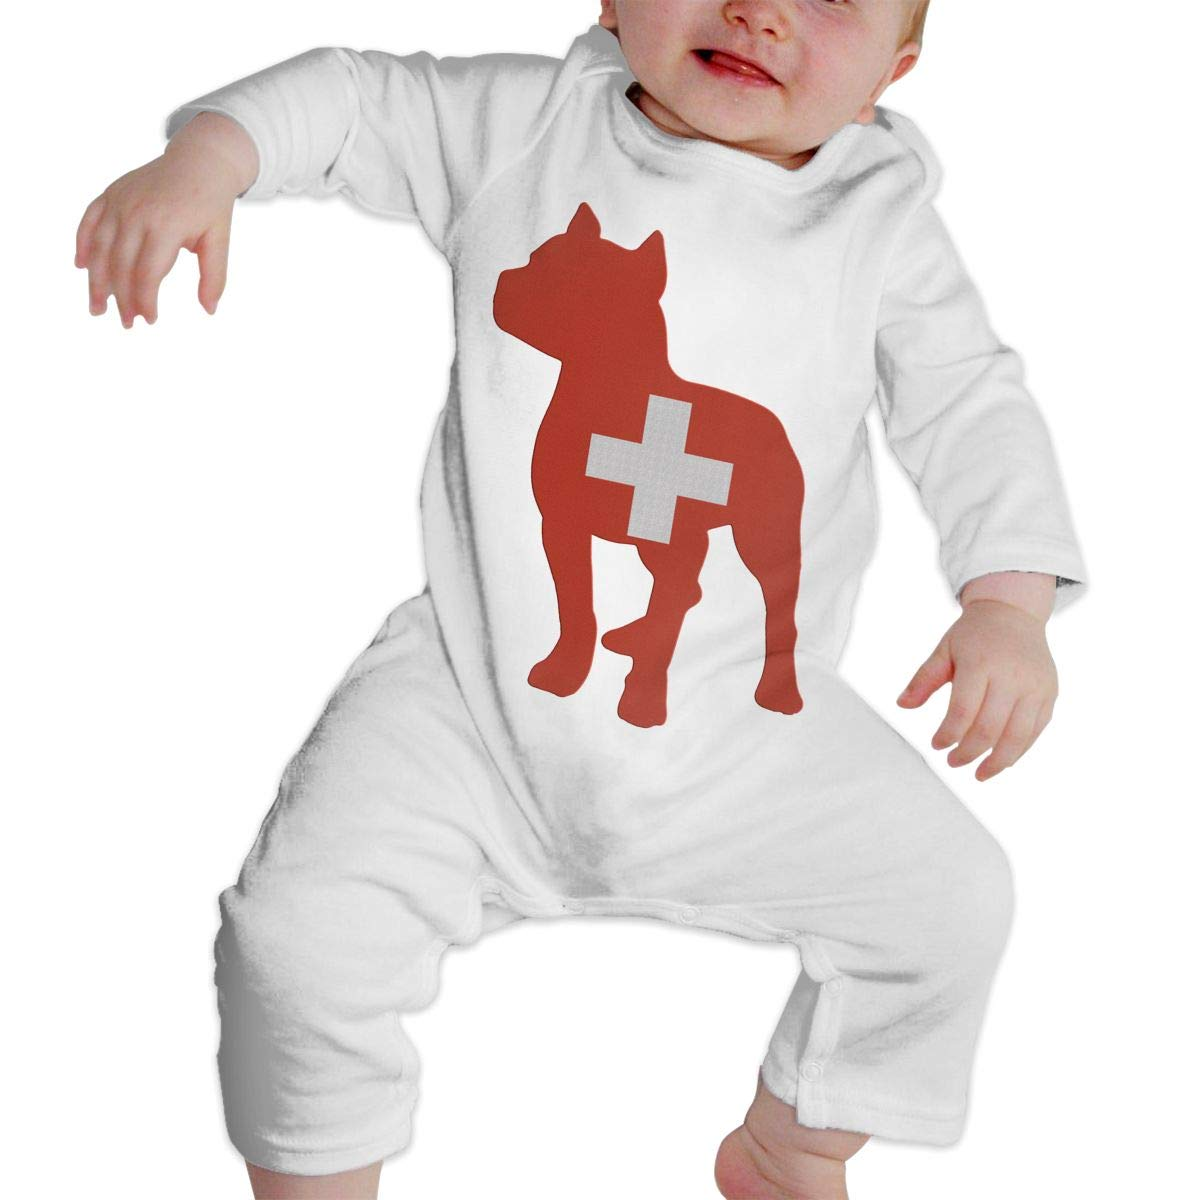 A1BY-5US Infant Baby Boys Girls Cotton Long Sleeve Patriotic Pitbull Switzerland Flag Romper Bodysuit One-Piece Clothes